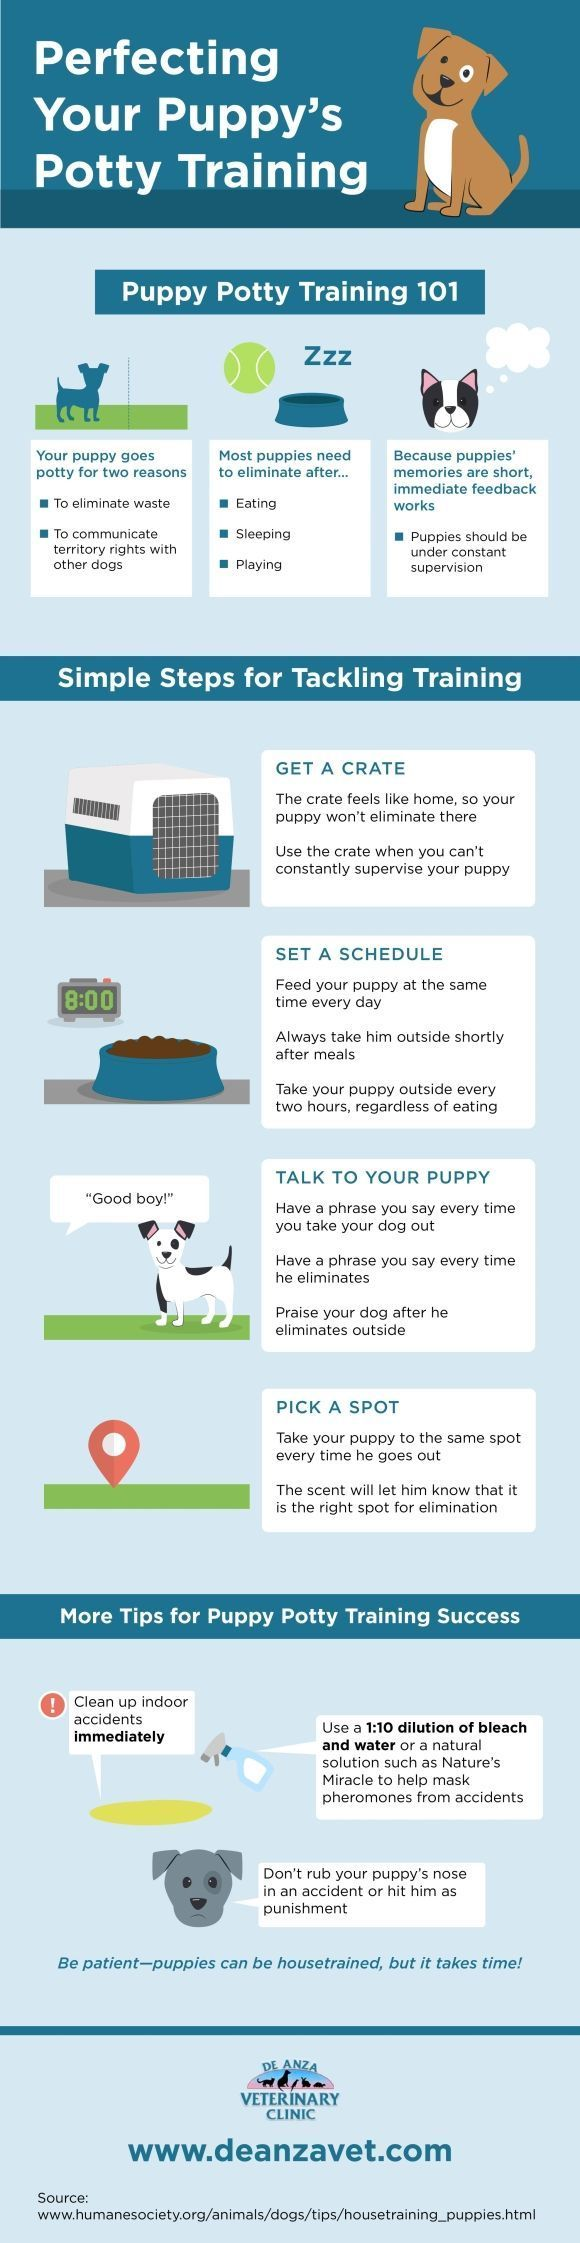 Do you know how to potty train your puppy? Start by setting a feeding schedule! Click over to this San Jose animal hospital infographic to get more tips that will help you potty train your furry friend.: